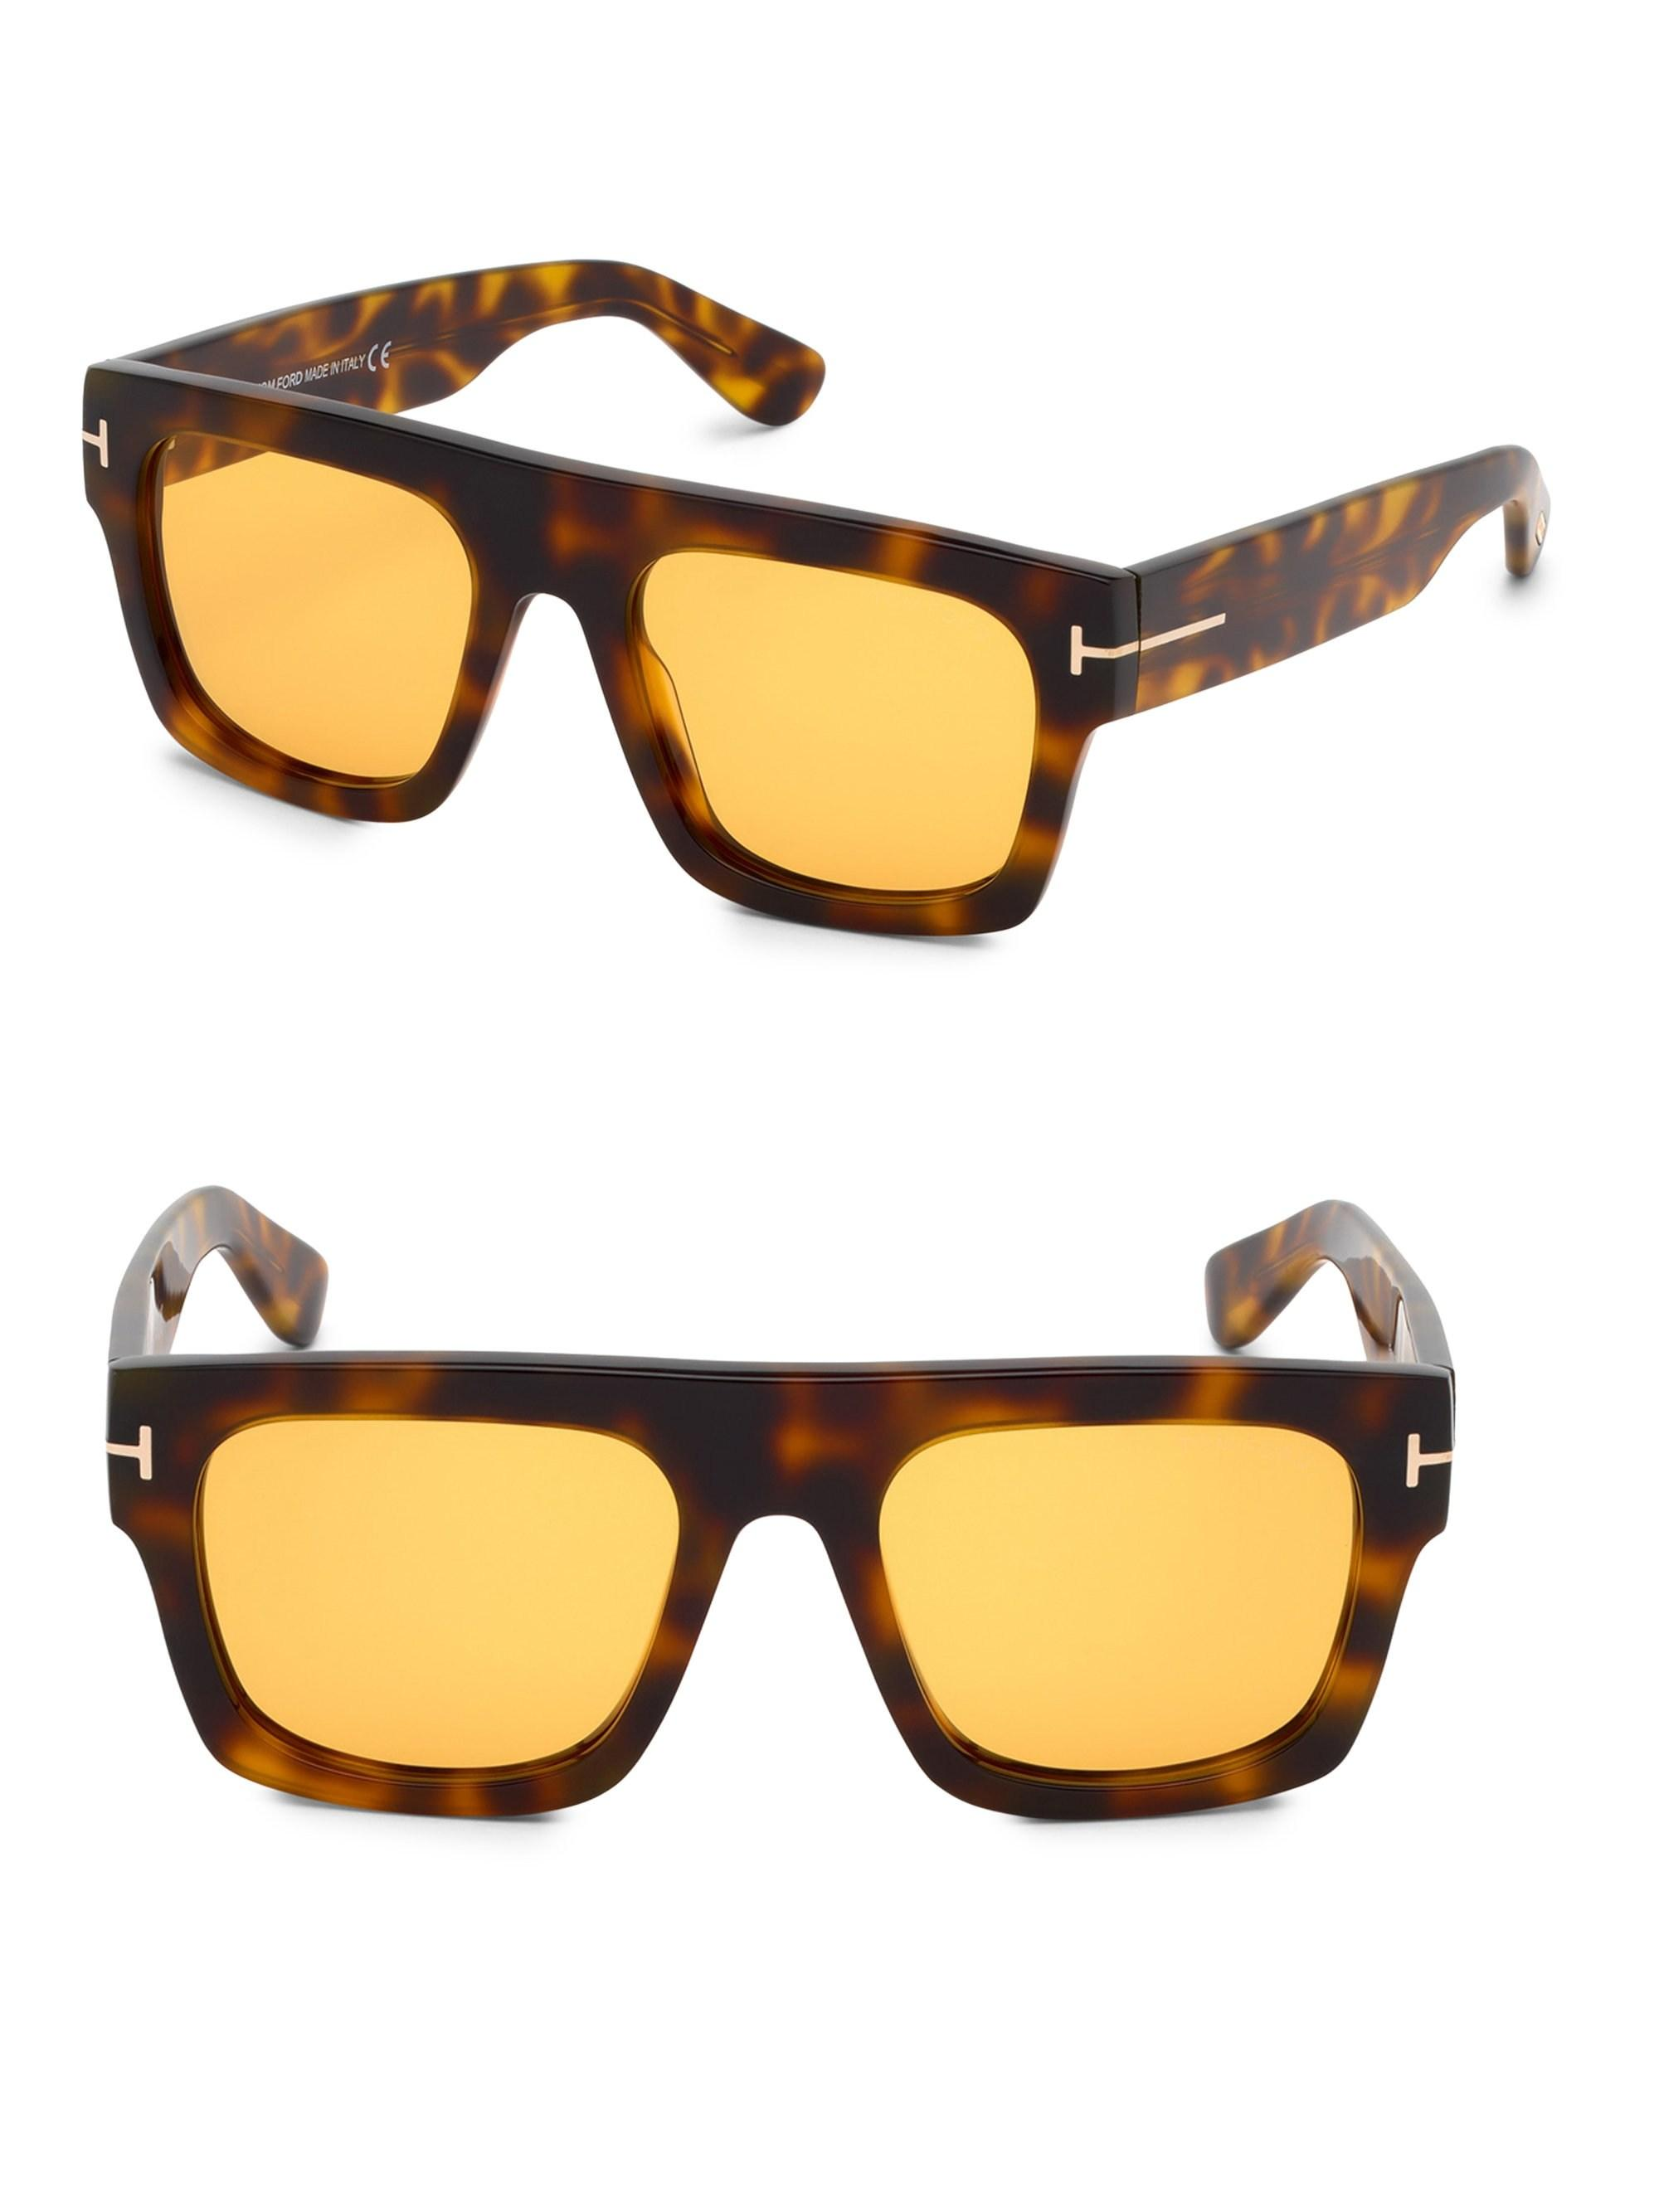 6c61d5fcee3 Lyst - Tom Ford Fausto 53mm Square Sunglasses for Men